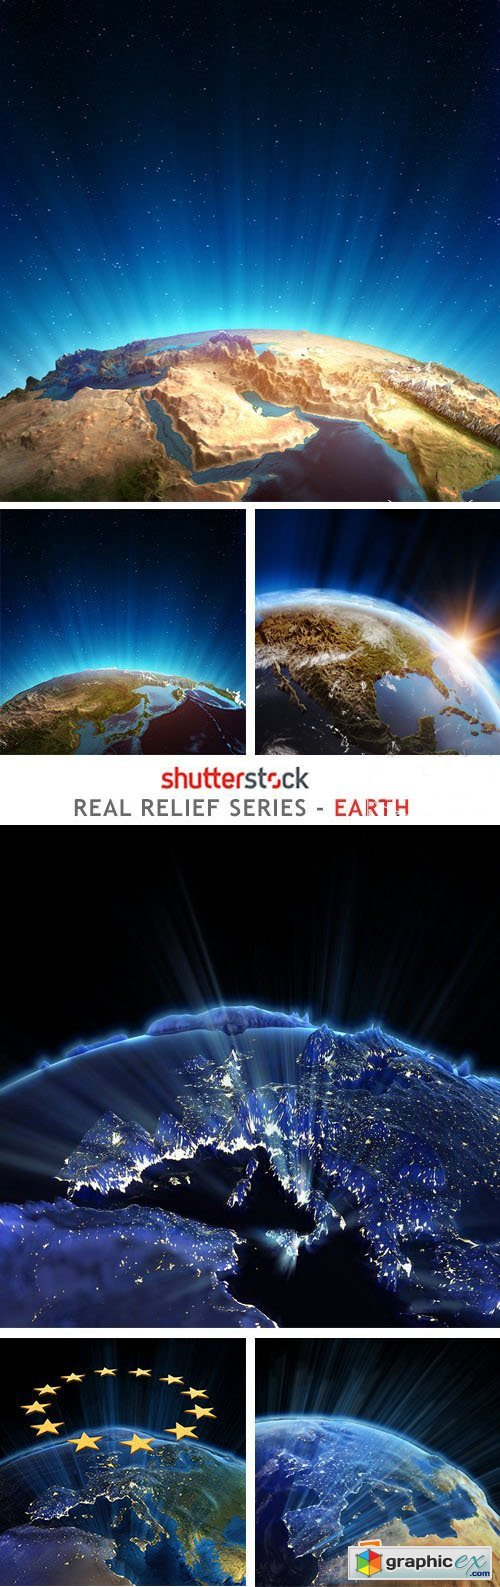 Real Relief Series - Earth - 24xJPG